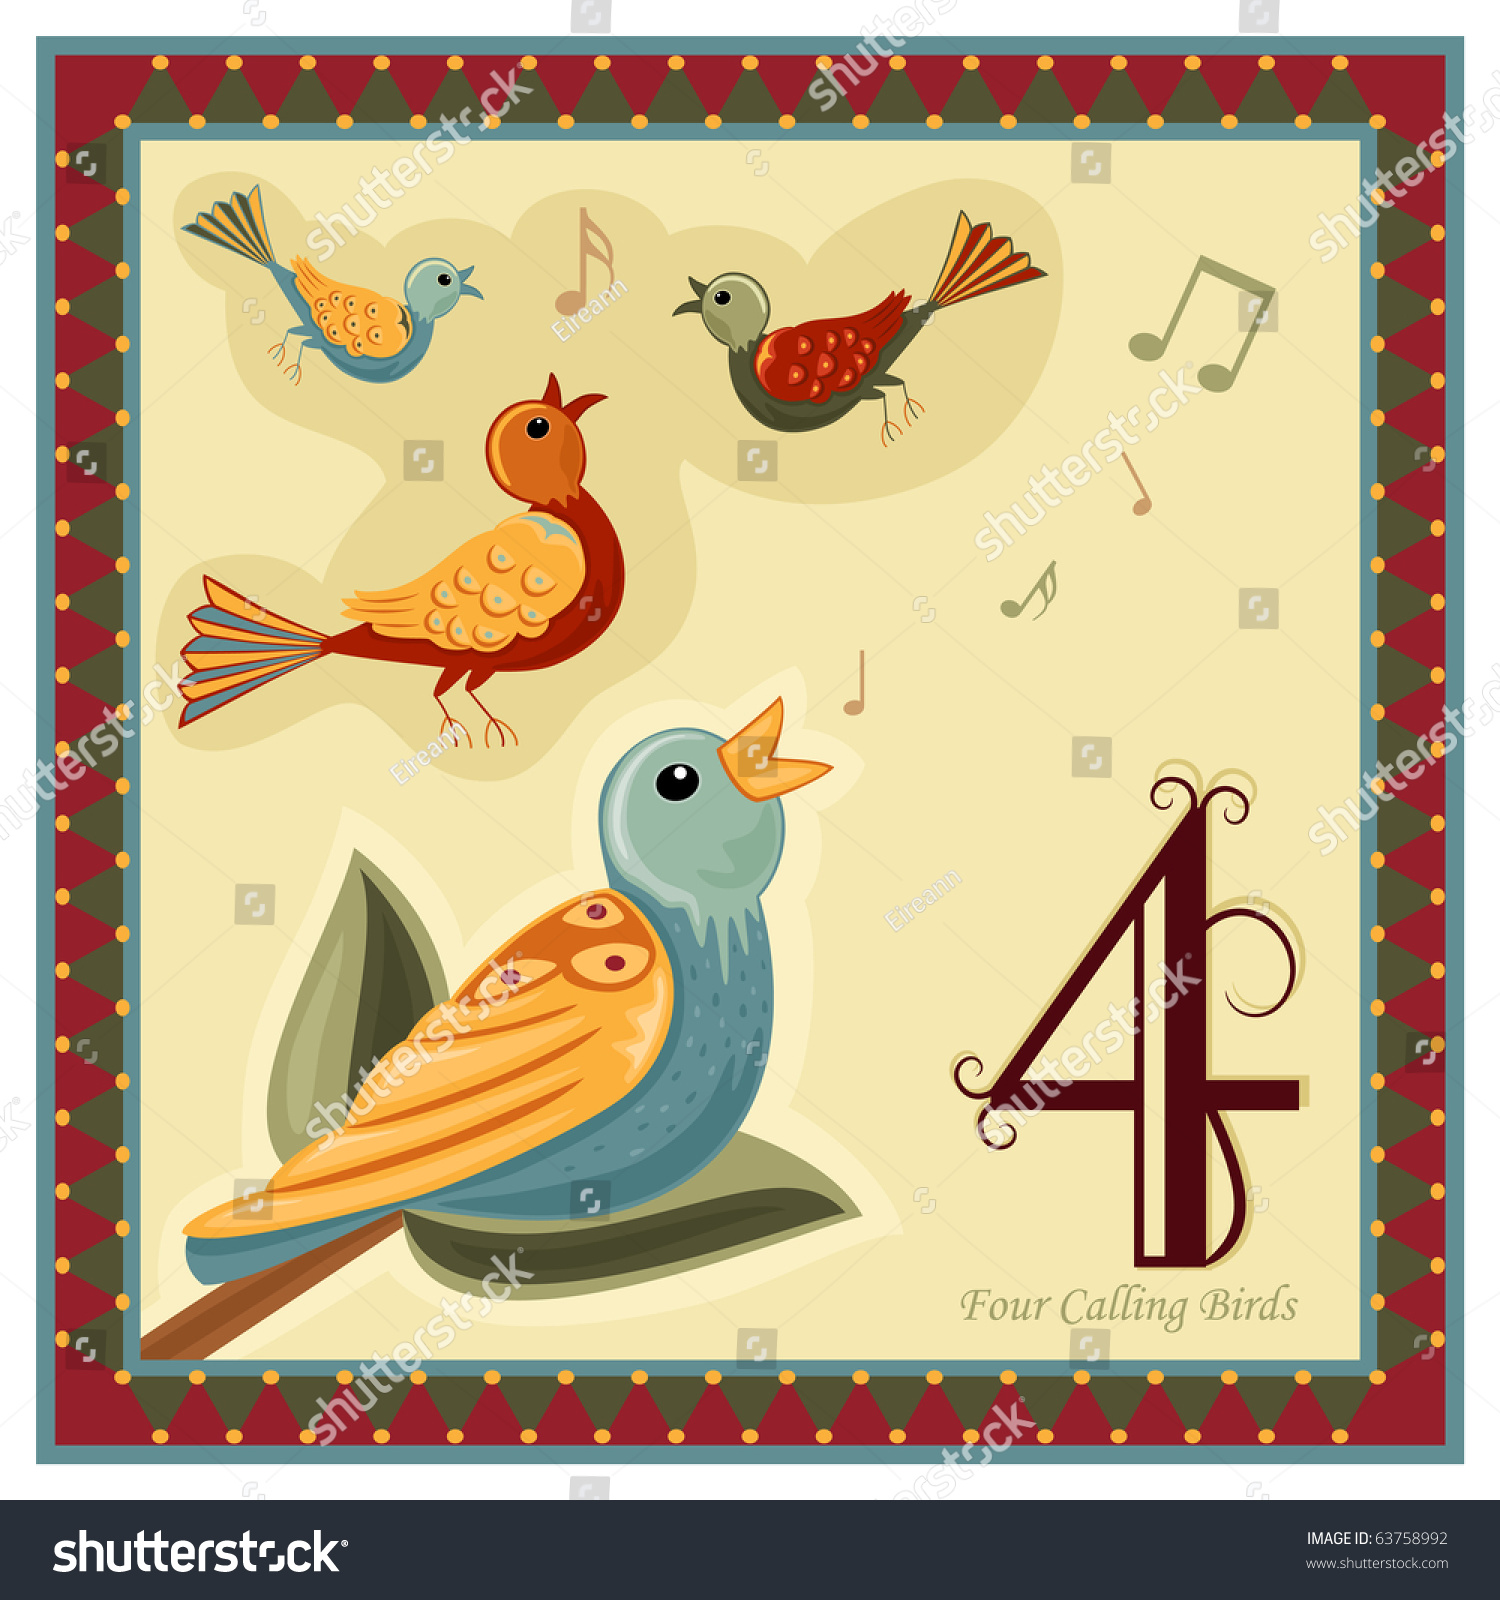 hight resolution of the 12 days of christmas 4 th day four calling birds